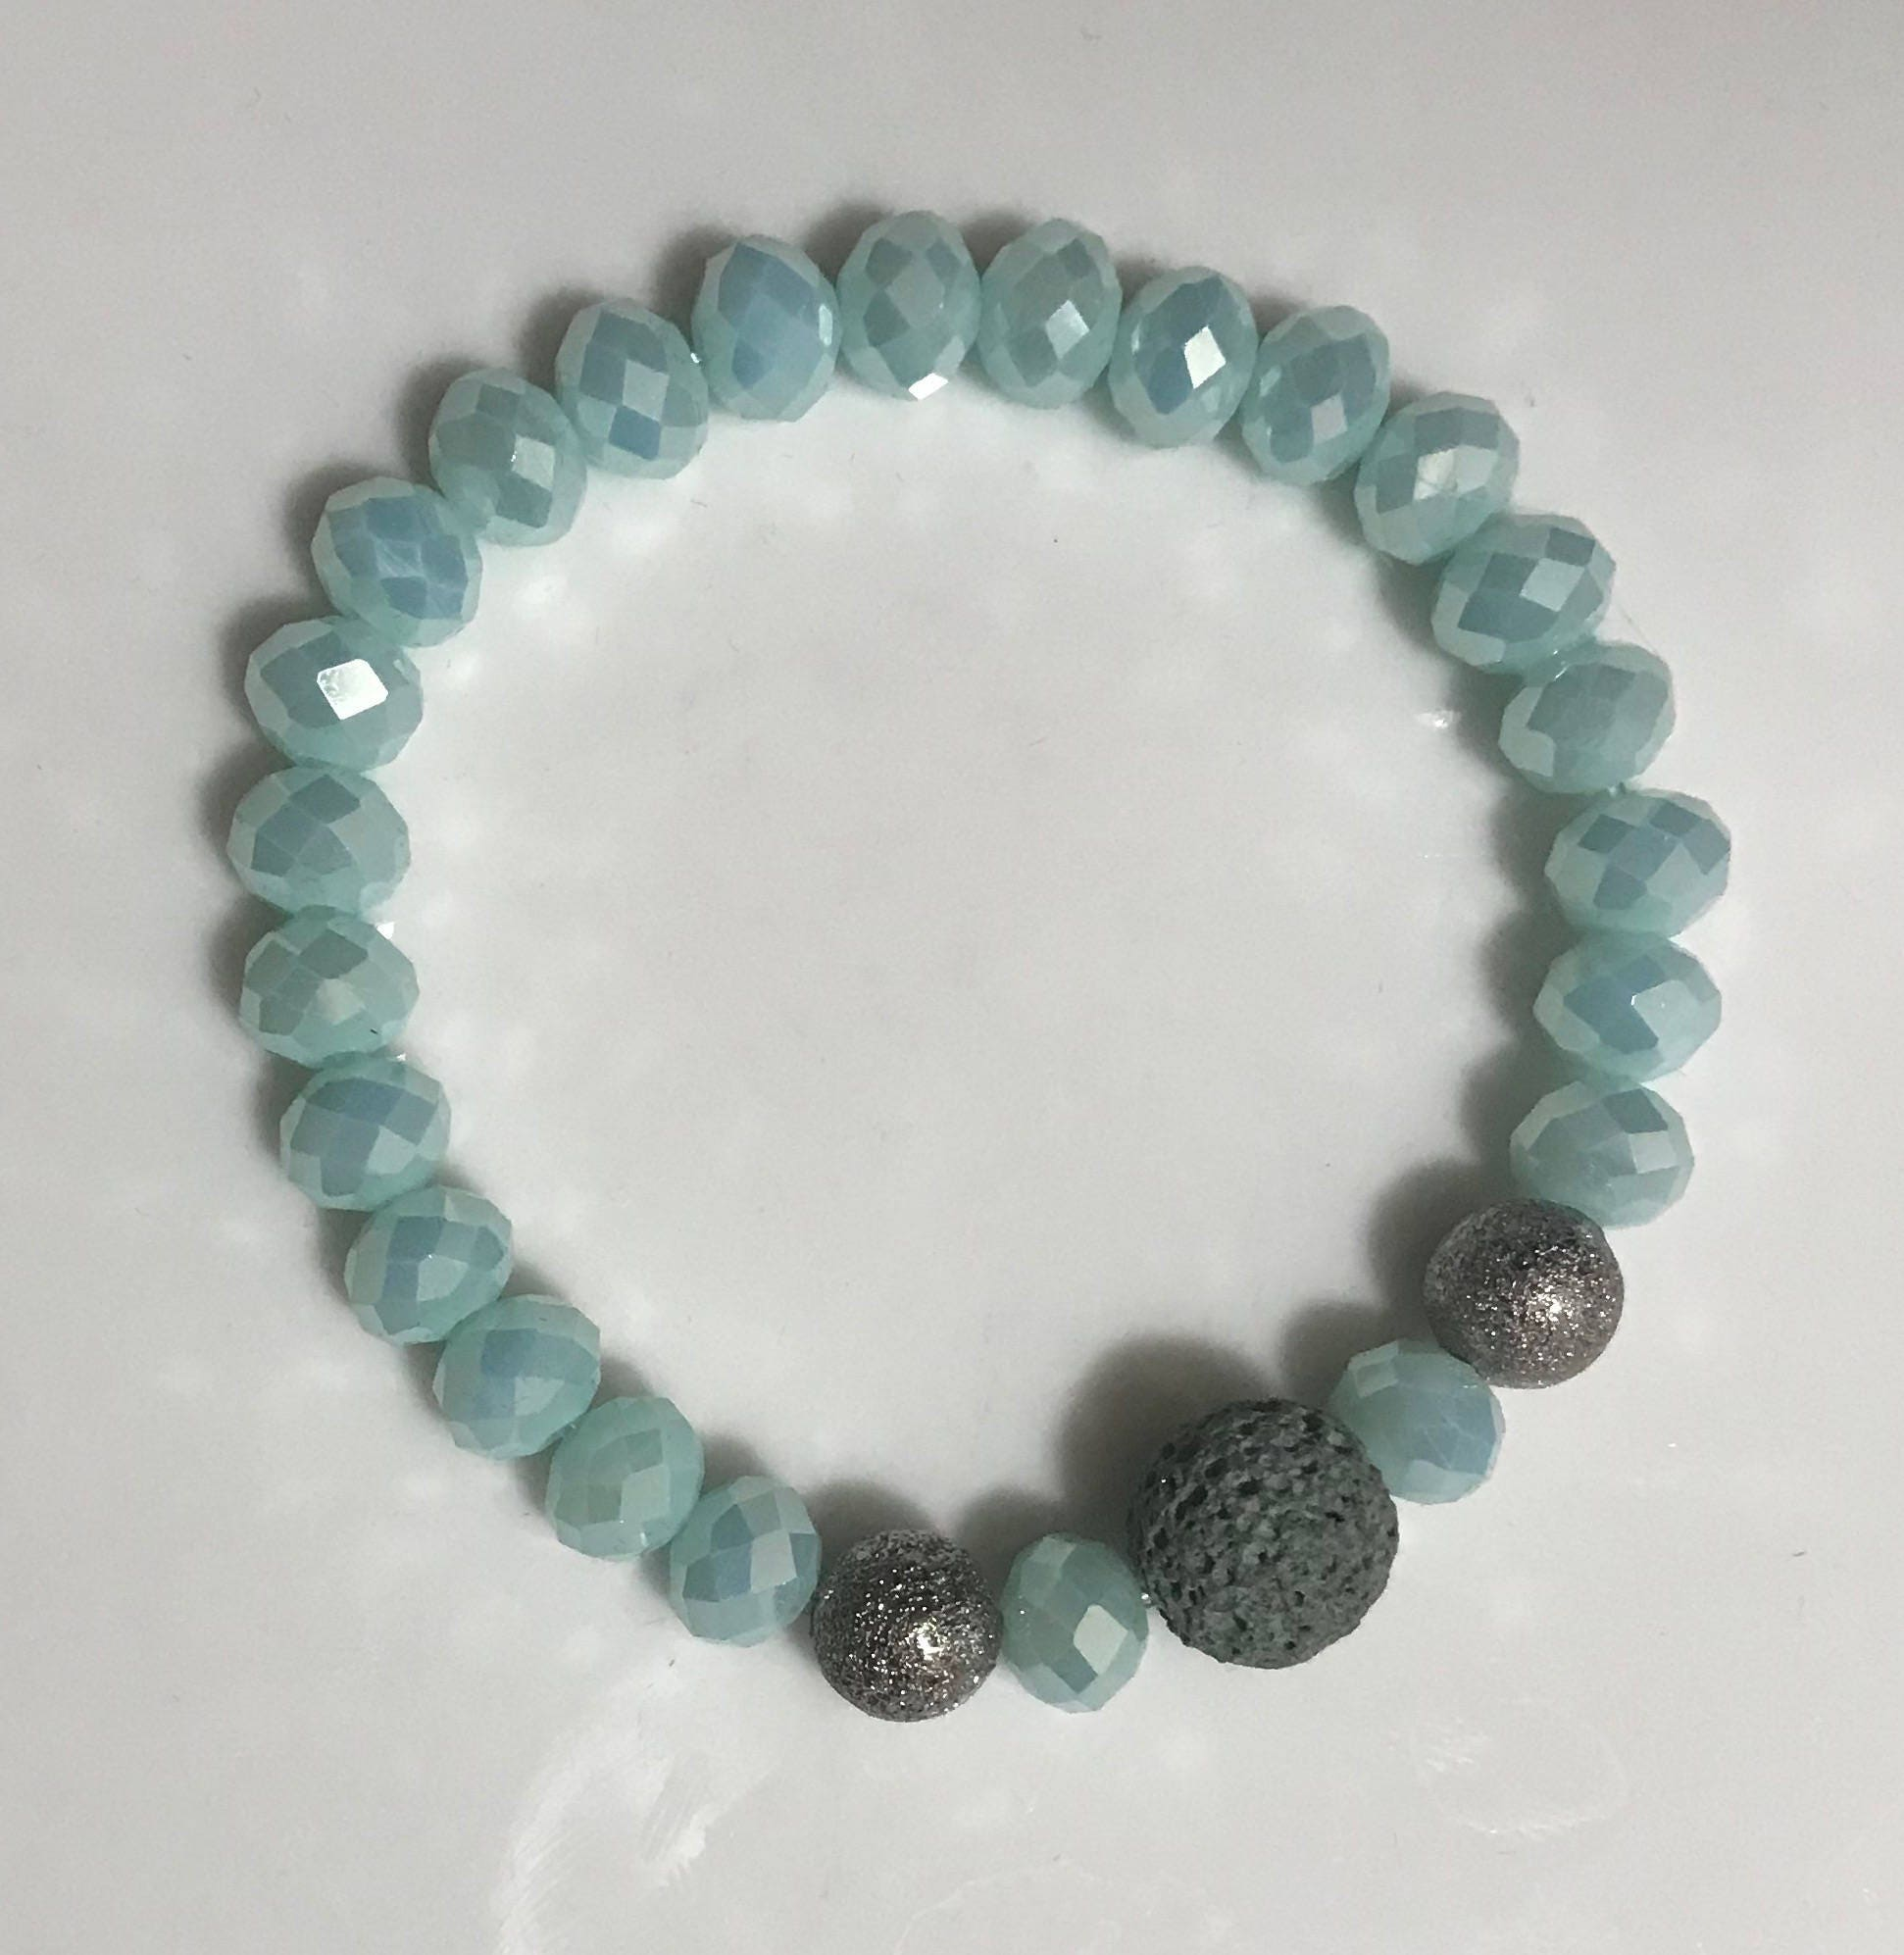 Pictures Of Handmade Beaded Jewelry Most Popular and Best Image